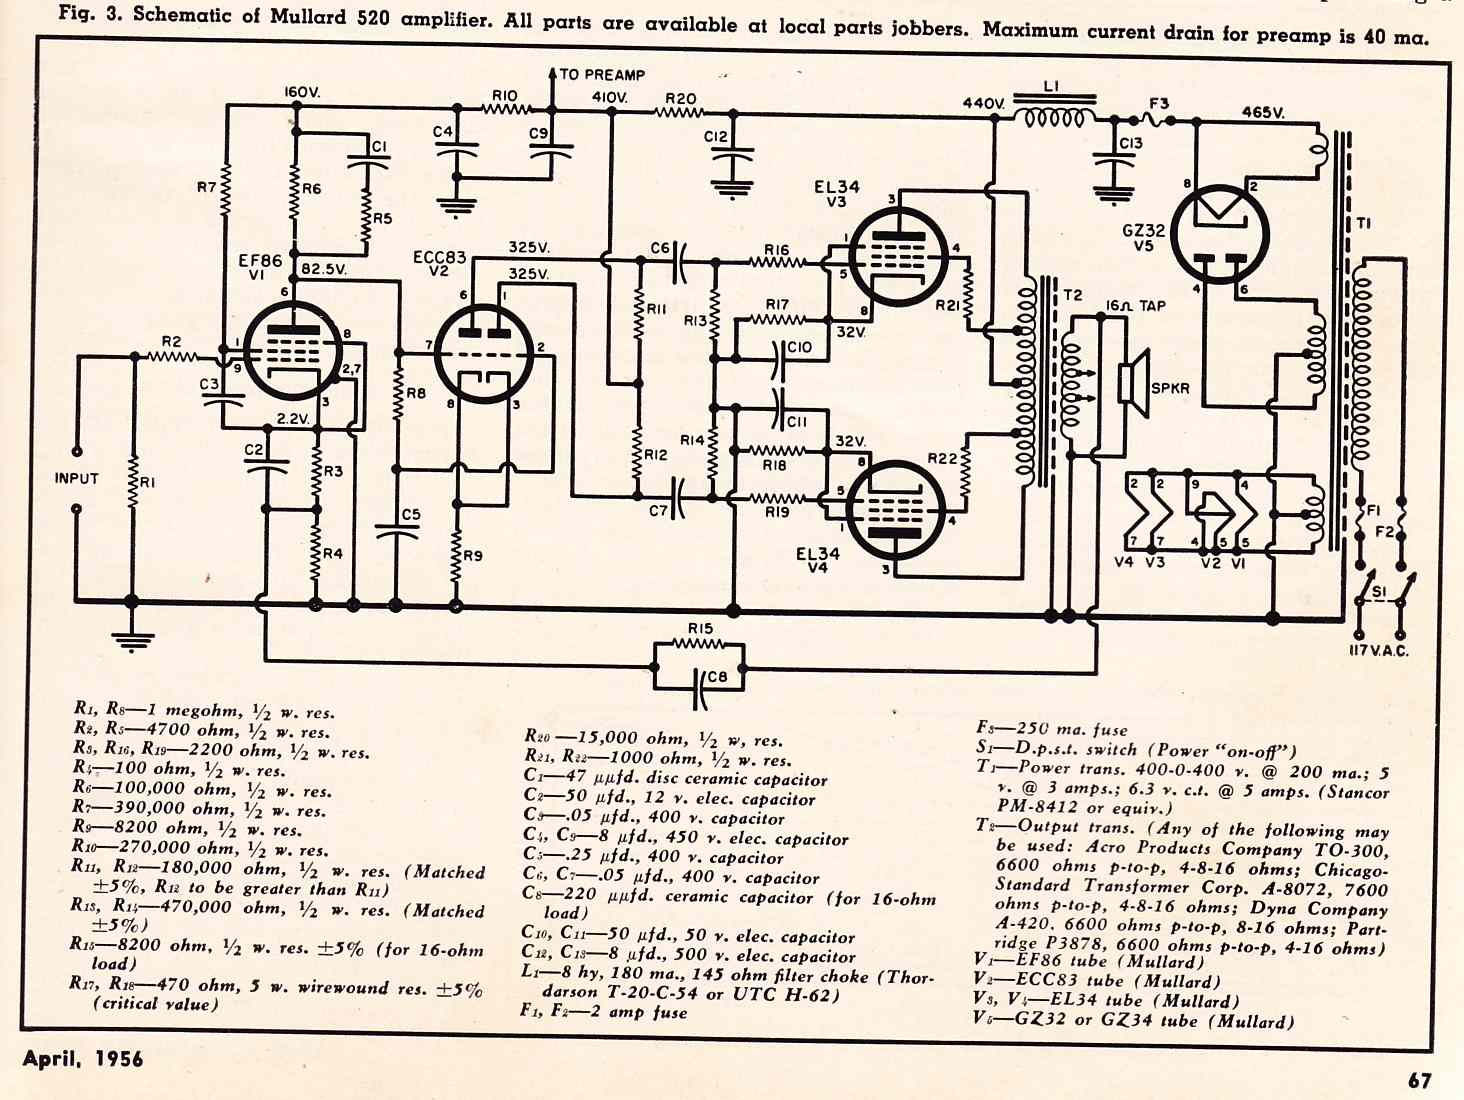 Amplifier Schematics Wiring Library 20 Watt Stereo With Tda2005 This